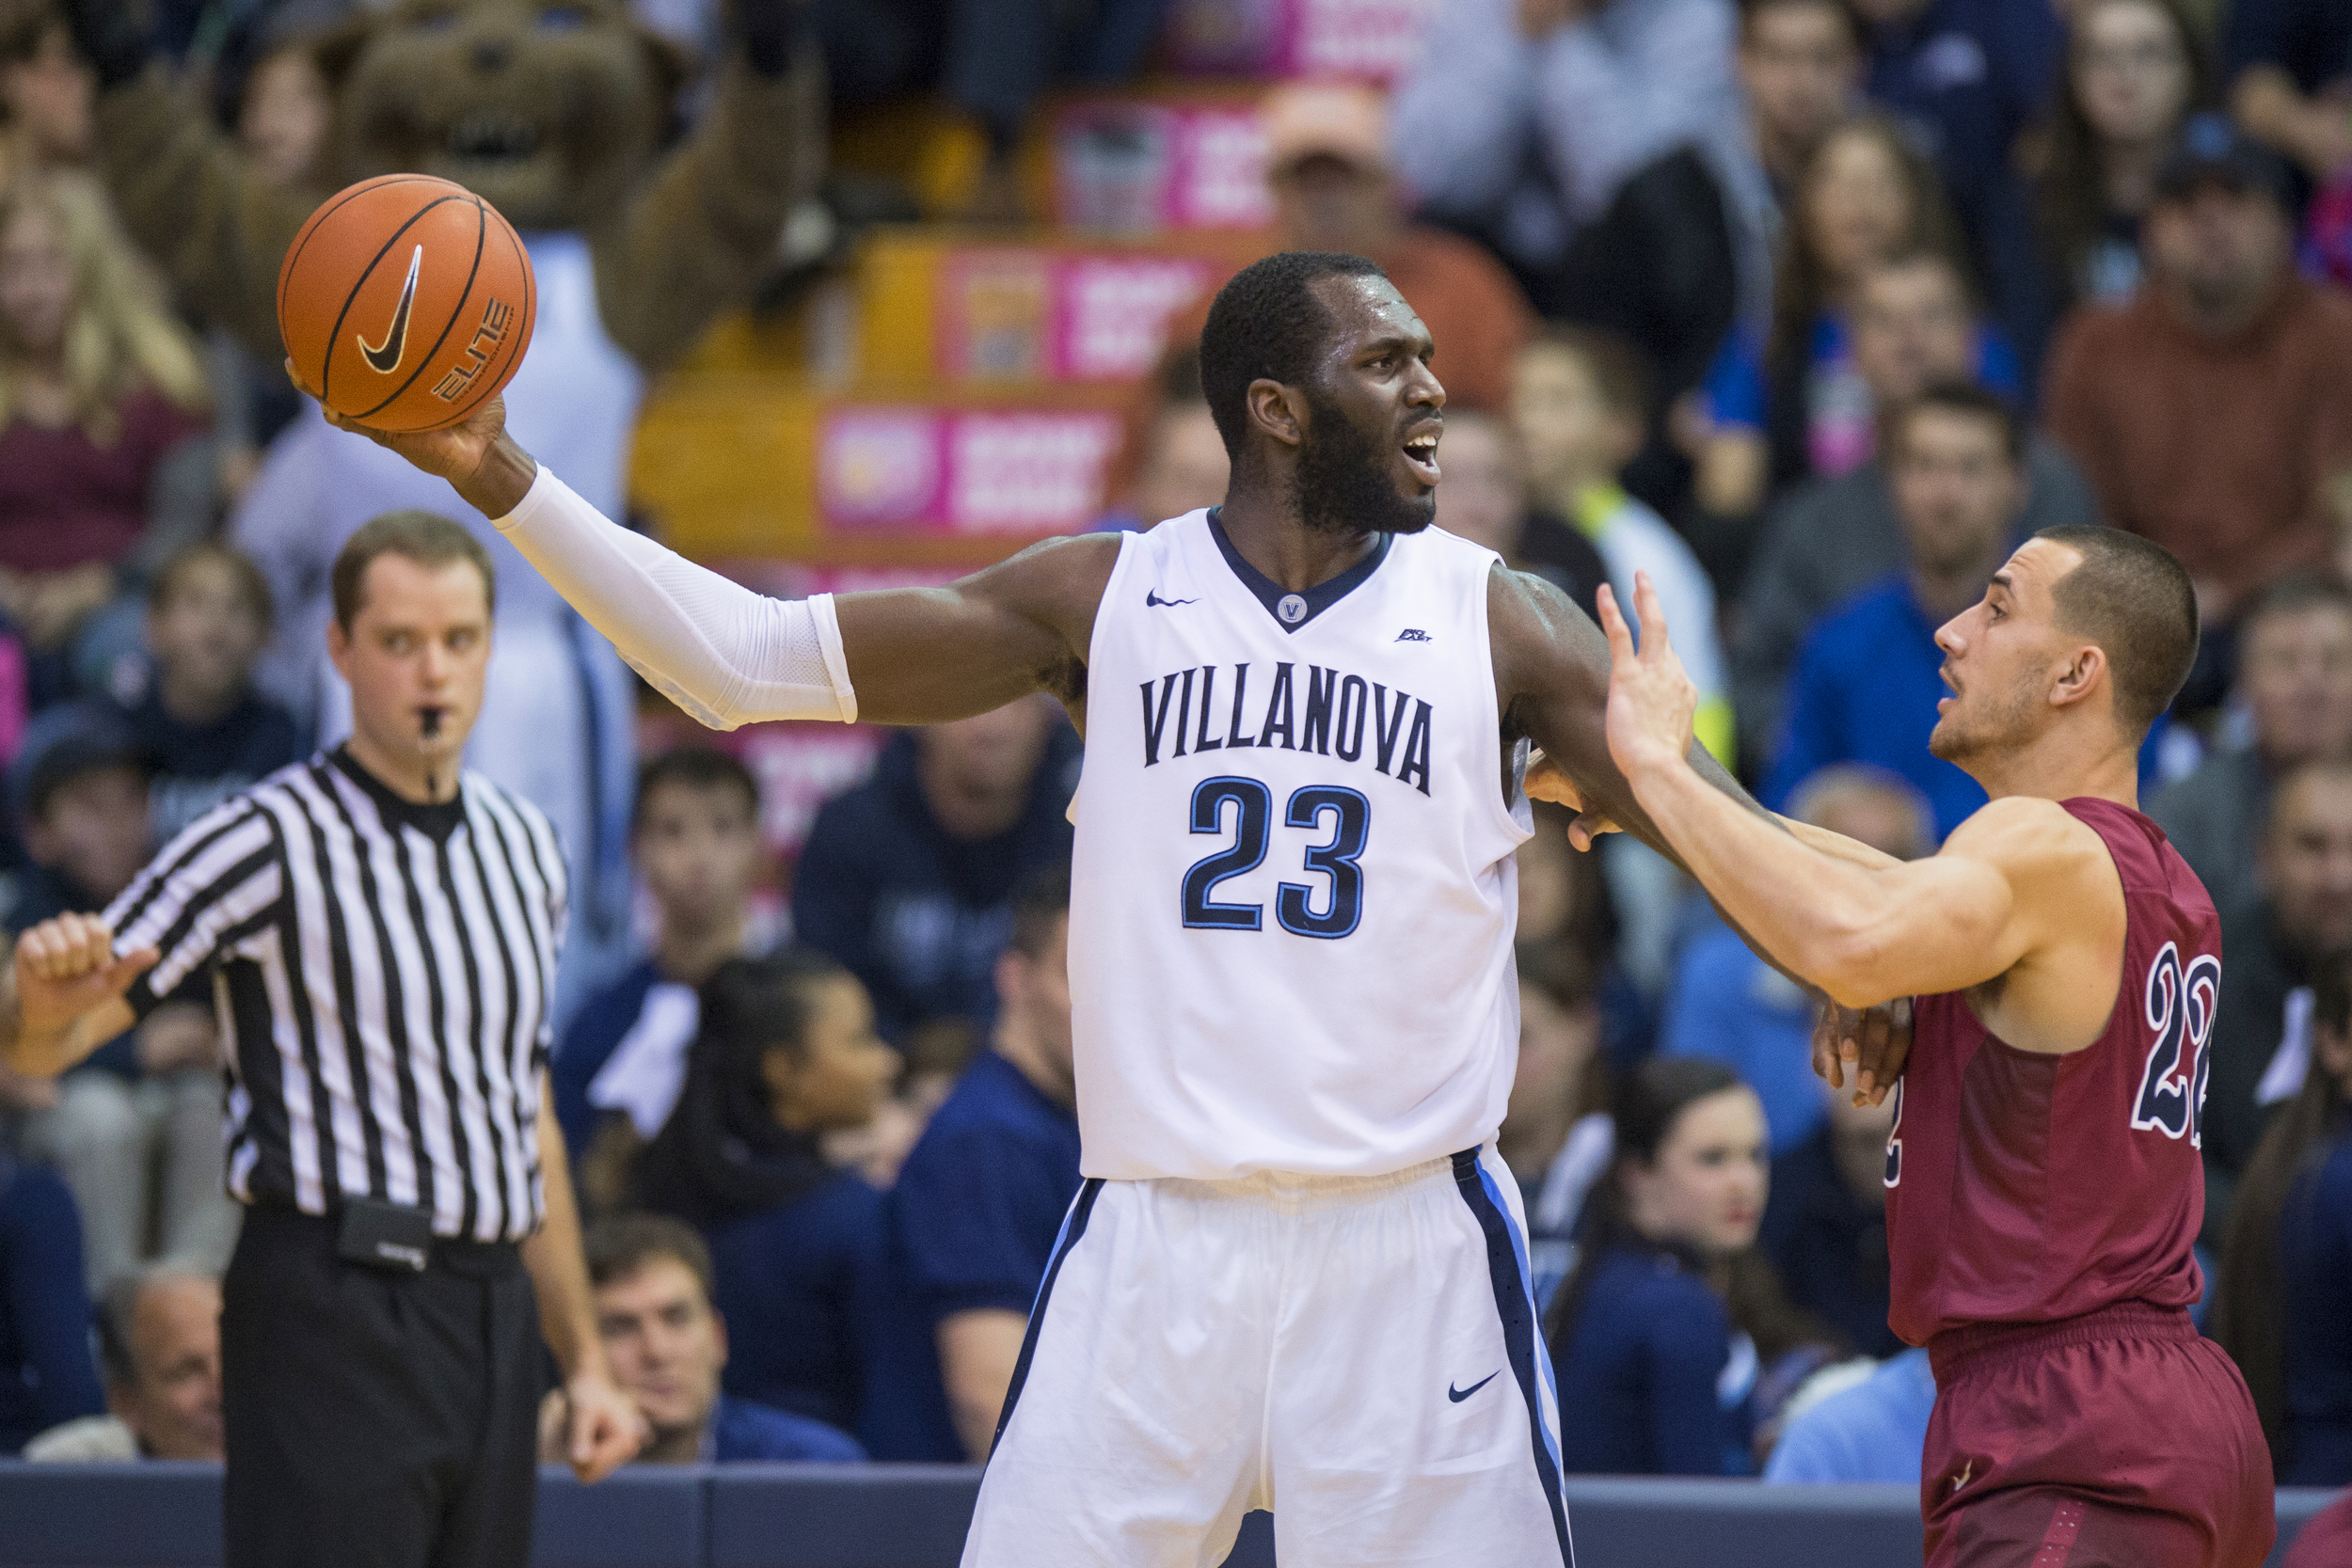 28 December 2015: Villanova Wildcats forward Daniel Ochefu (23) holds the ball away from Pennsylvania Quakers forward Mike Auger (22) during the NCAA men's basketball game between the Penn Quakers and the Villanova Wildcats played at Pavillion in Villanova, PA. (Photo by Gavin Baker/Icon Sportswire)